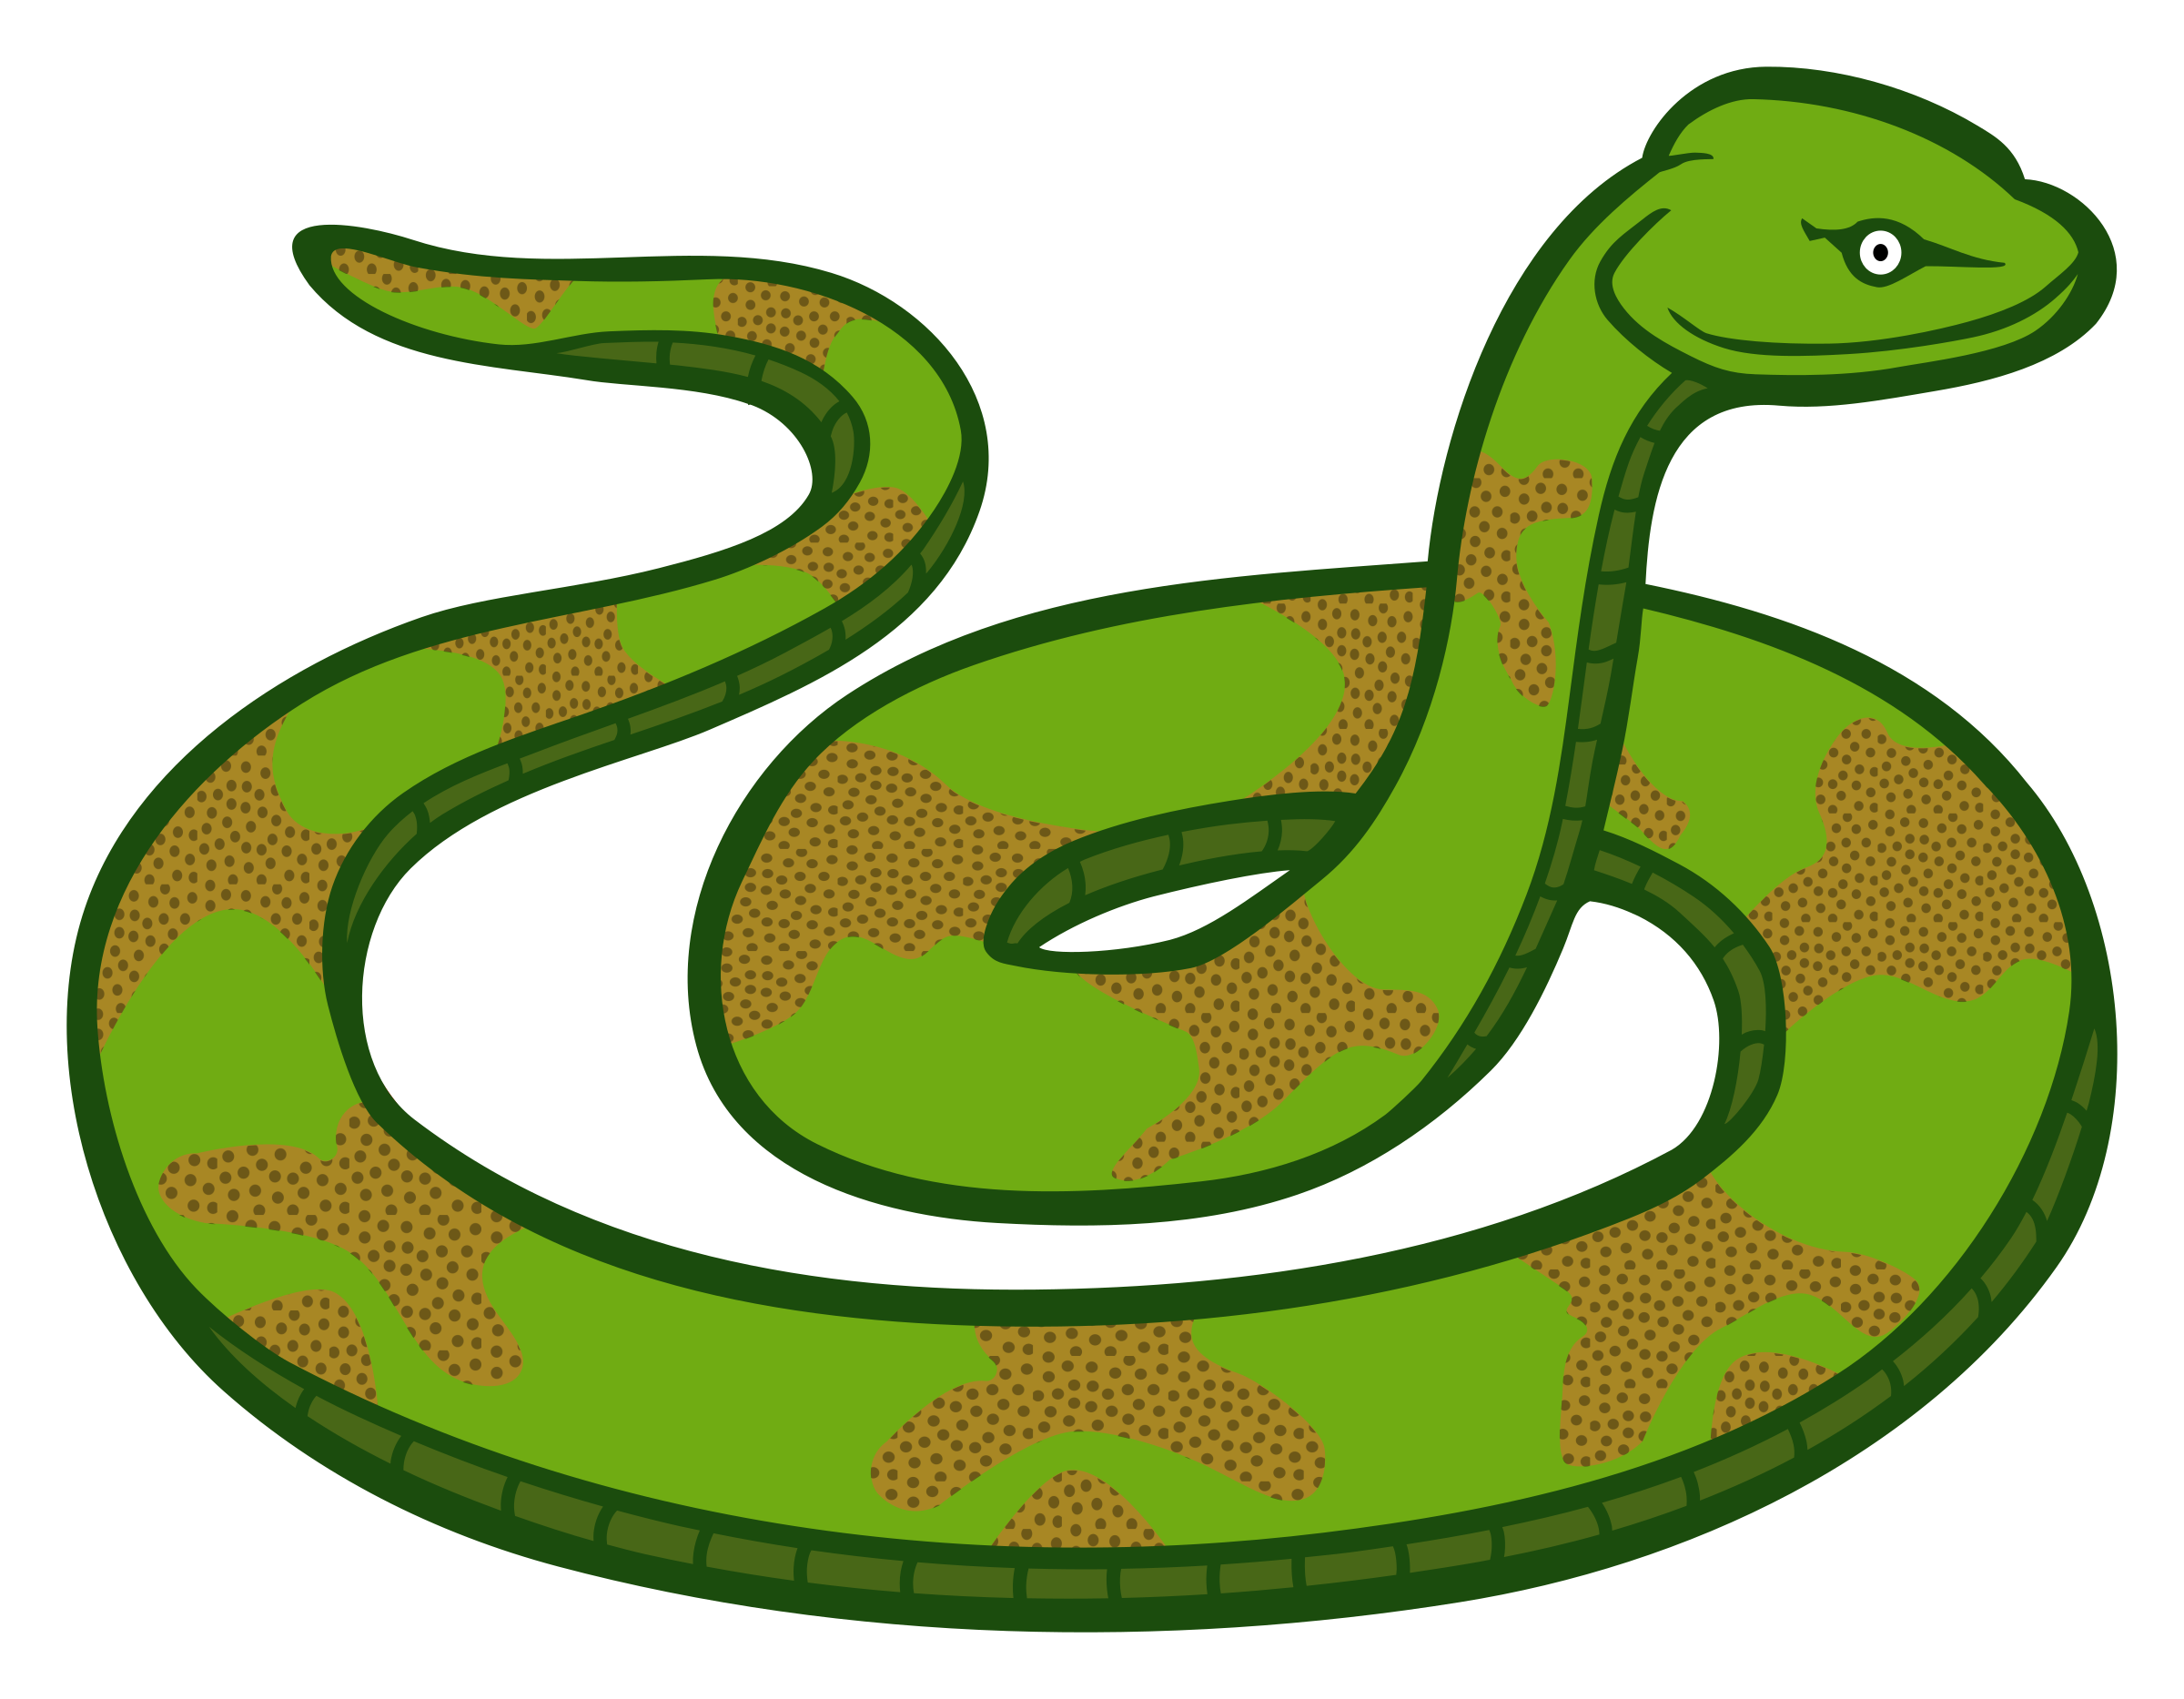 Transparent snake clipart 2